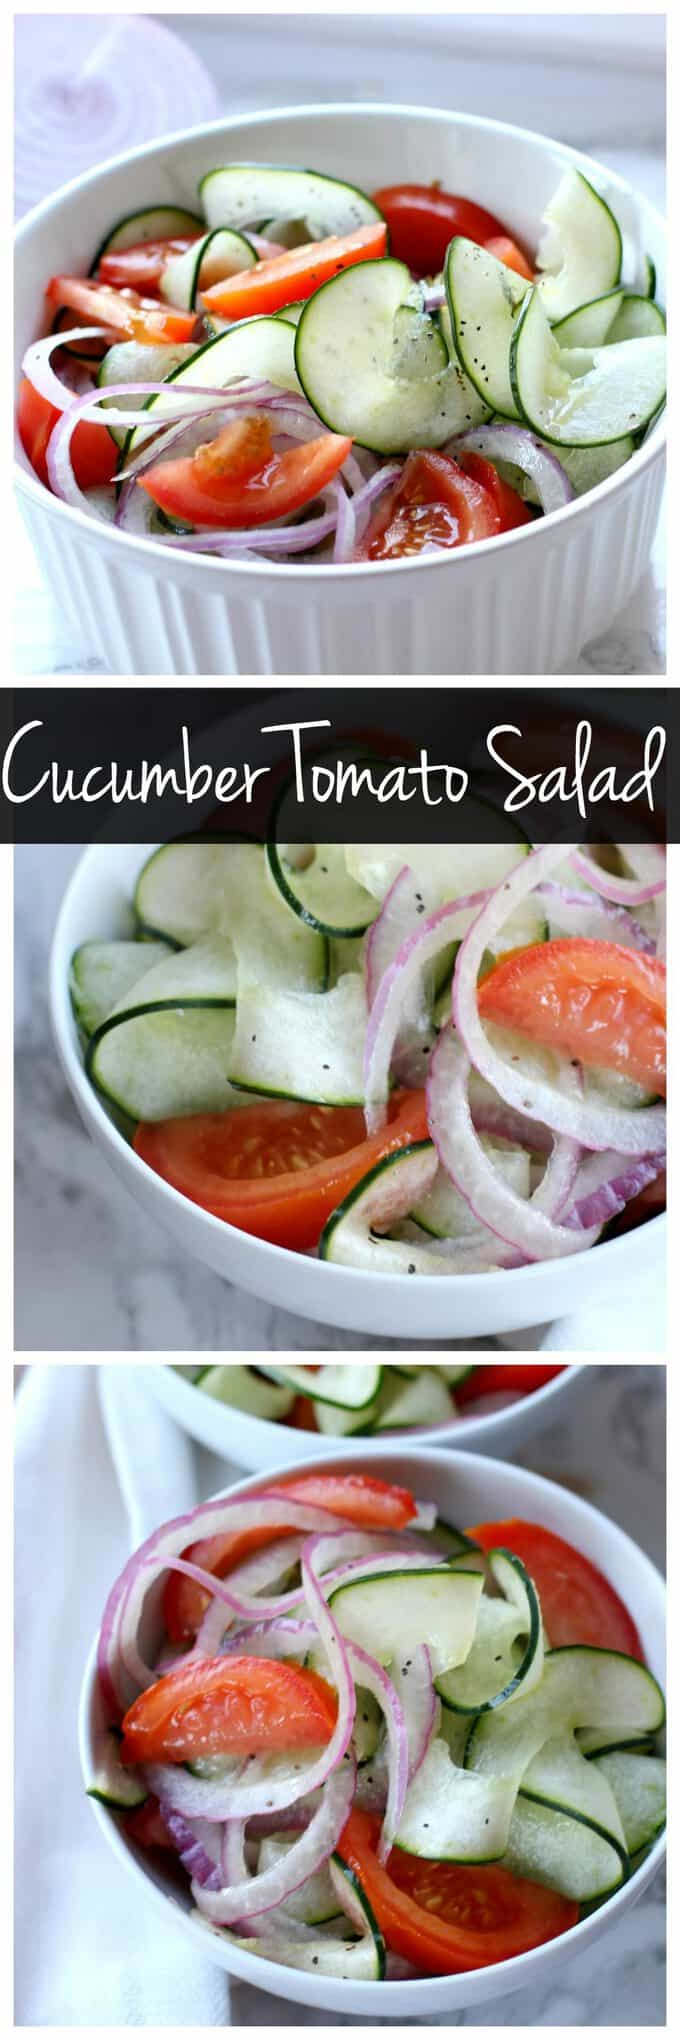 You only need a handful of pantry staples to whip up this easy tomato cucumber salad! Fresh produce shines in this easy salad recipe!